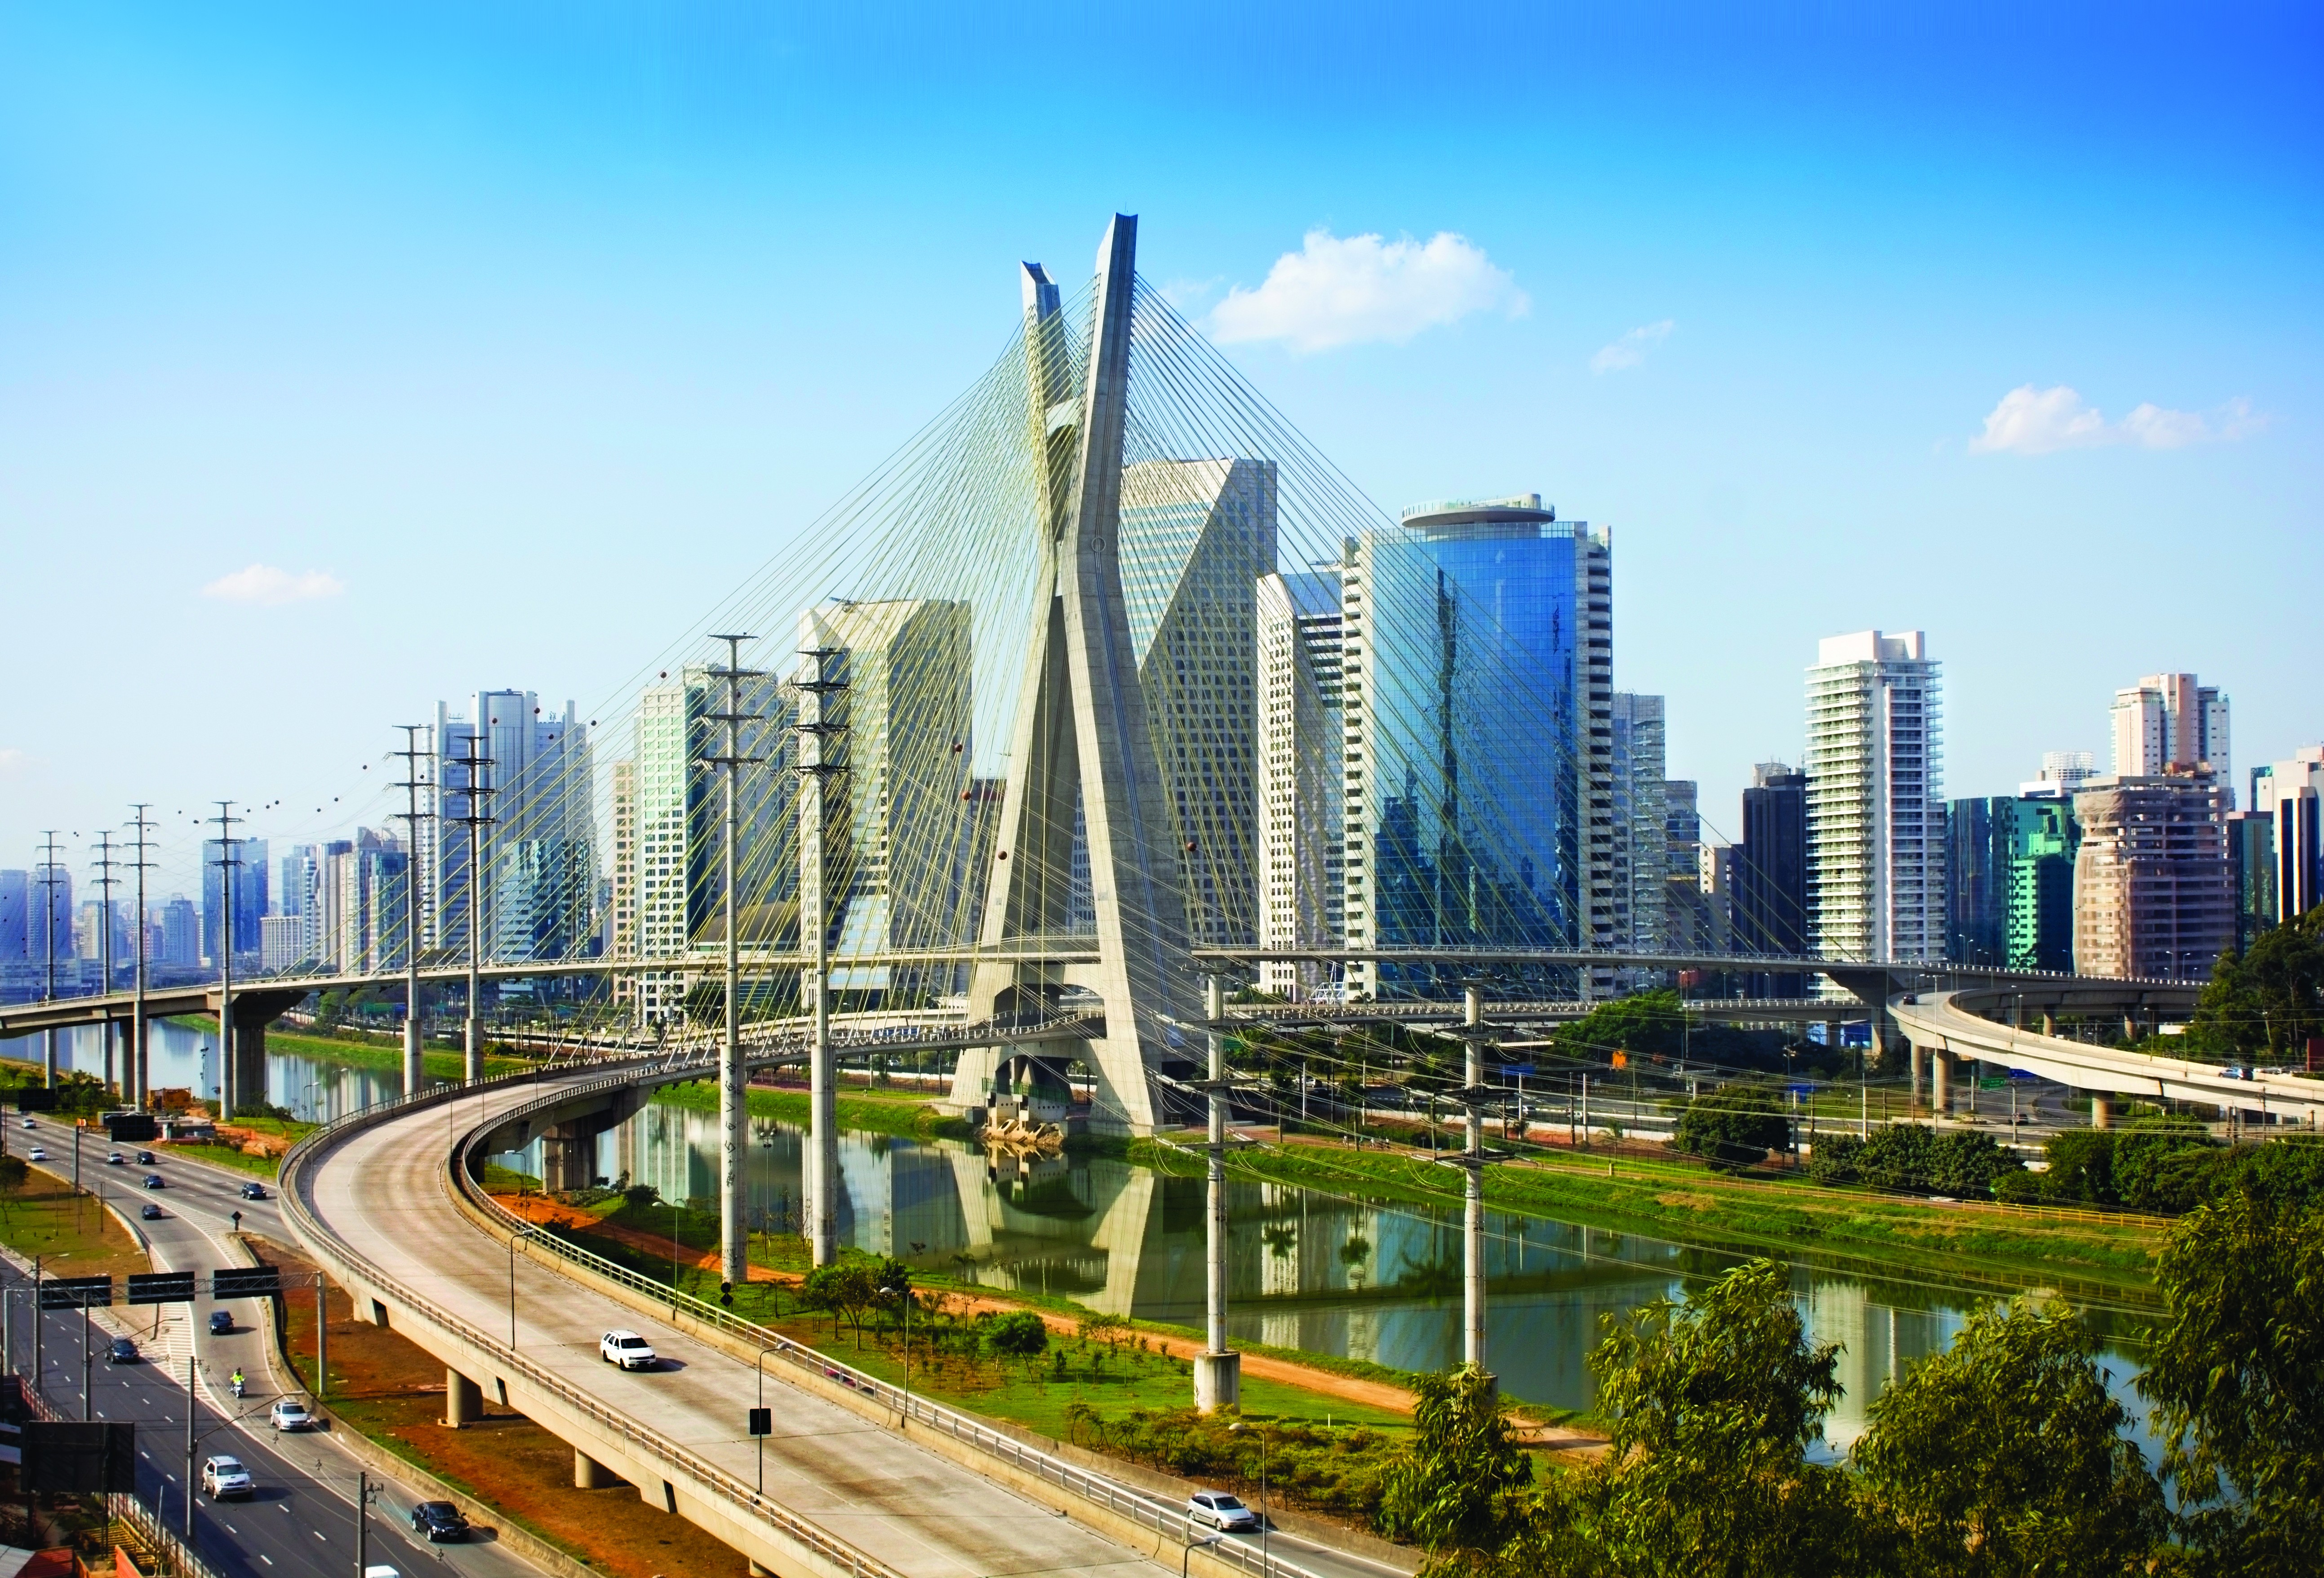 sao paulo An integrated architecture, design, planning and consulting firm—5000+  professionals networked across 44 offices—providing global reach with local  touch.